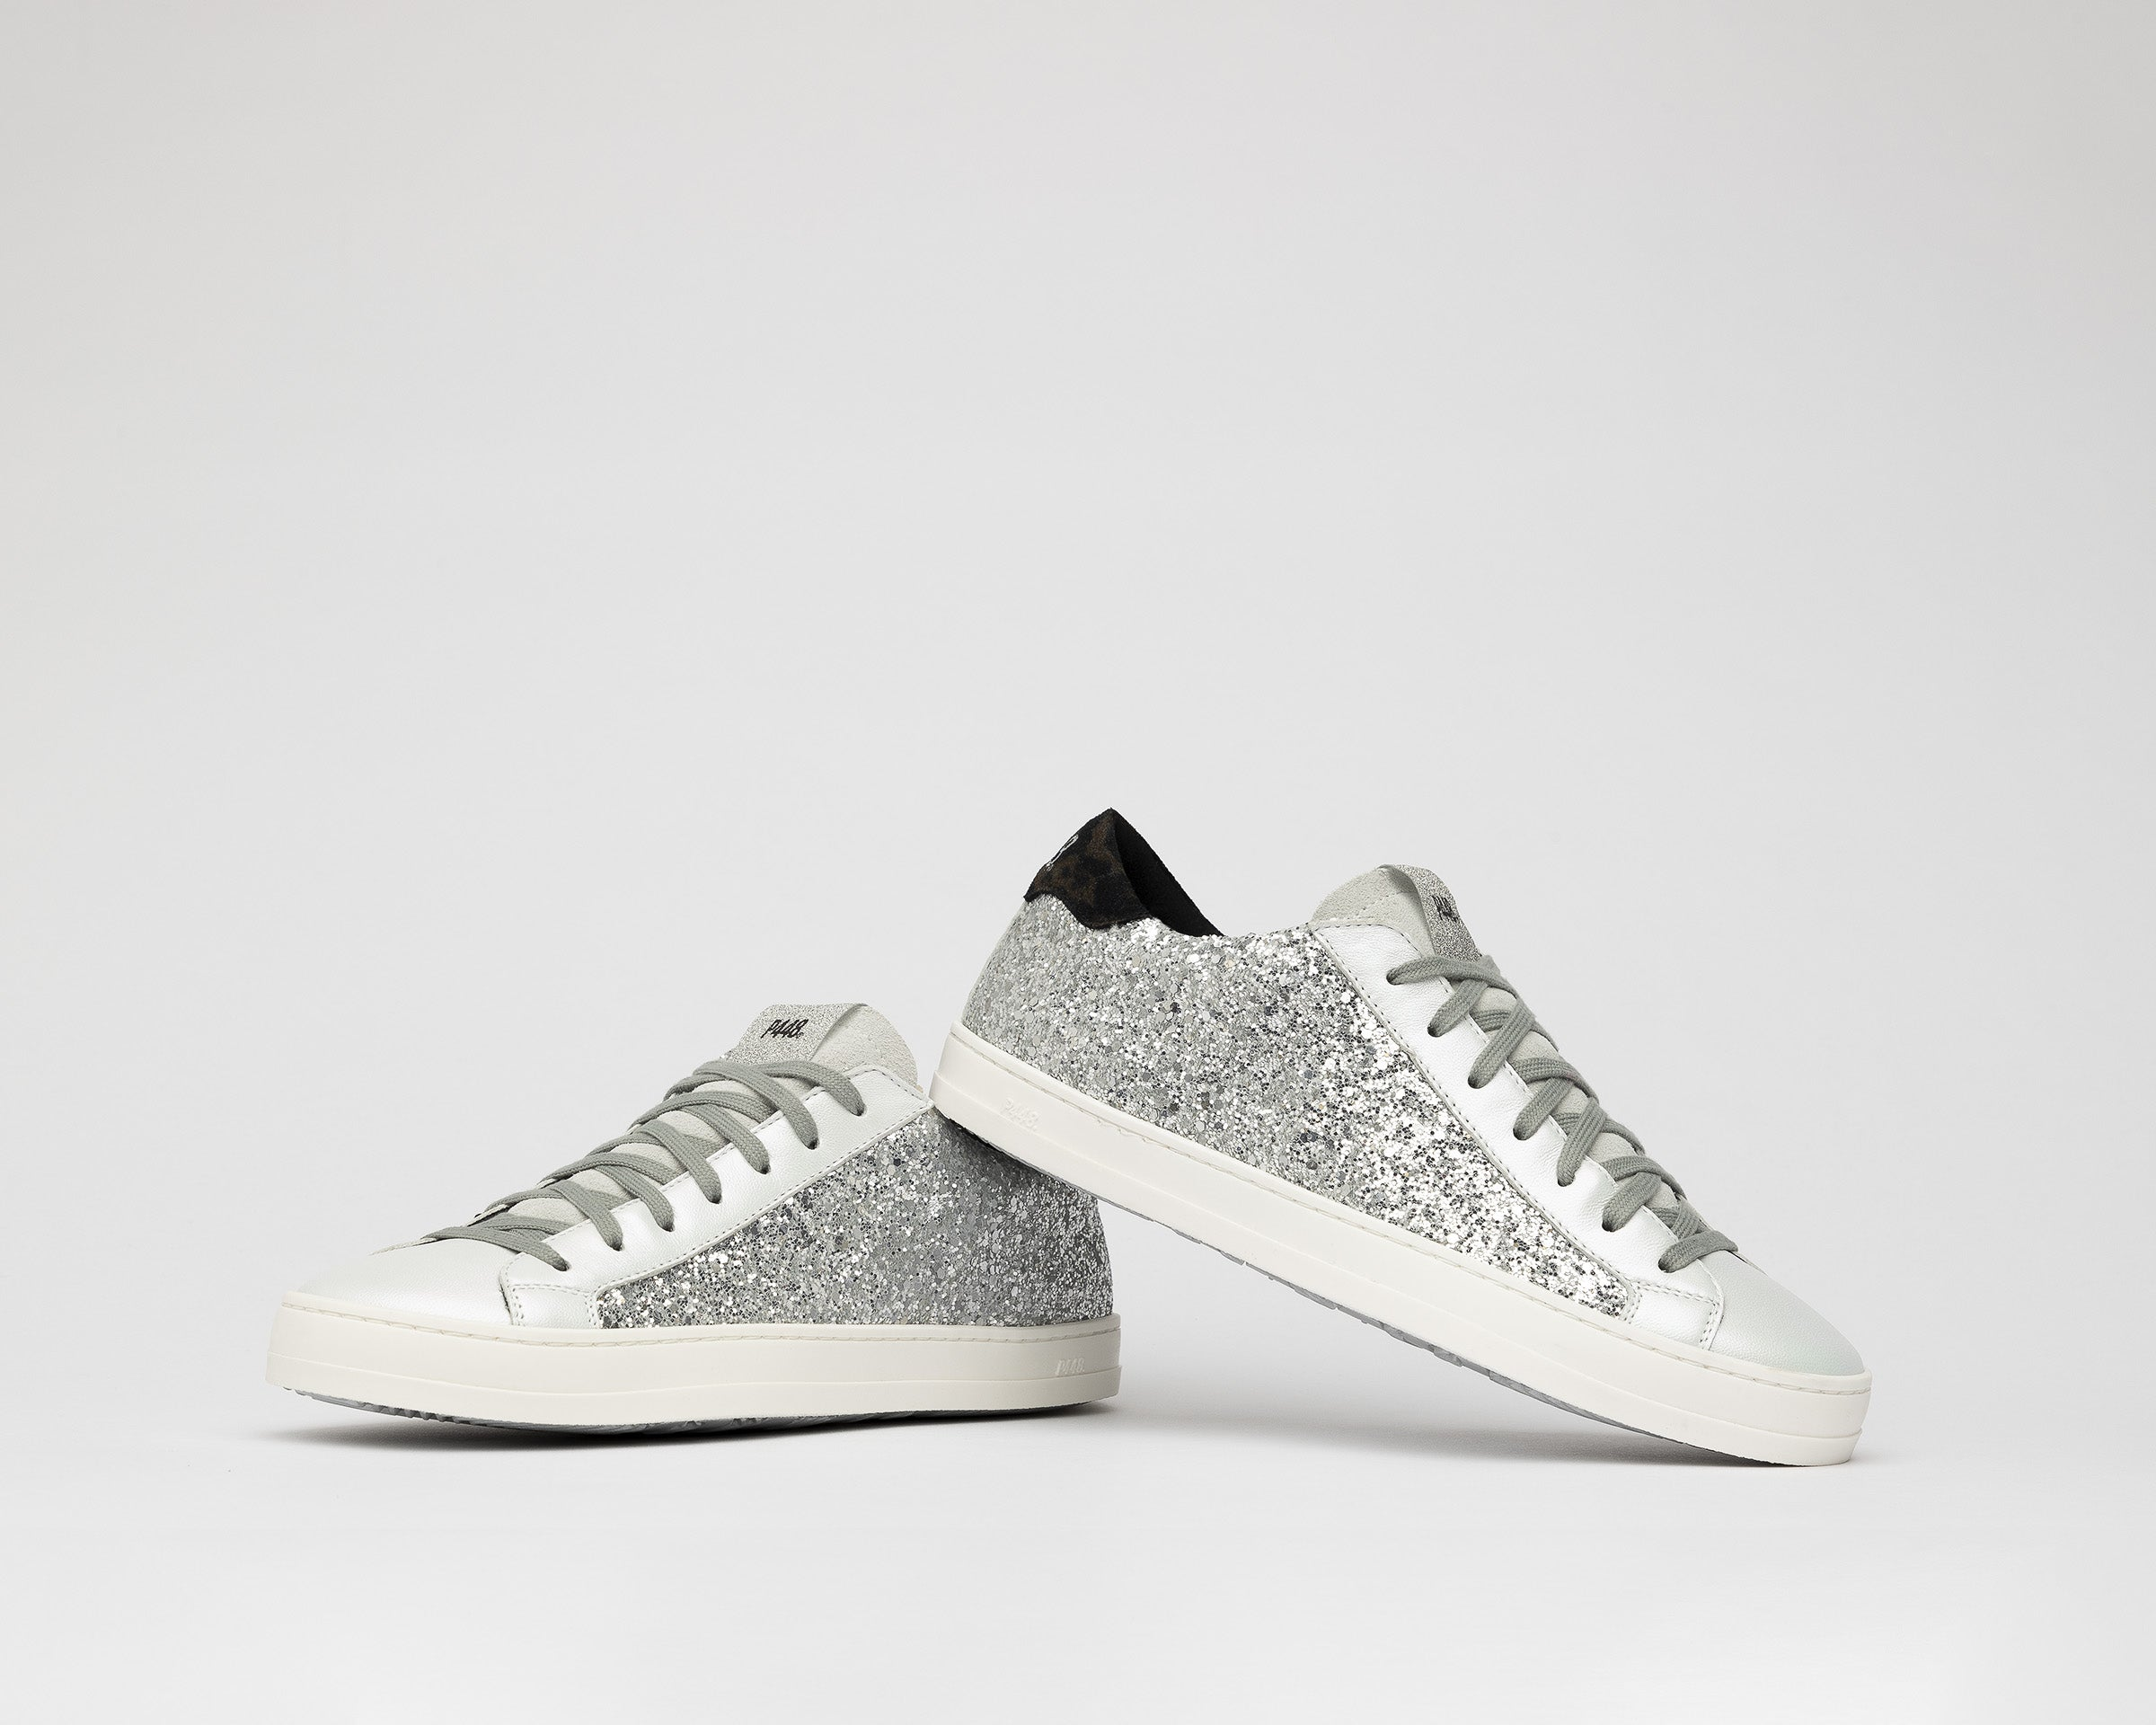 John Low-Top Sneaker in Ginerva Silver Glitter - Detail